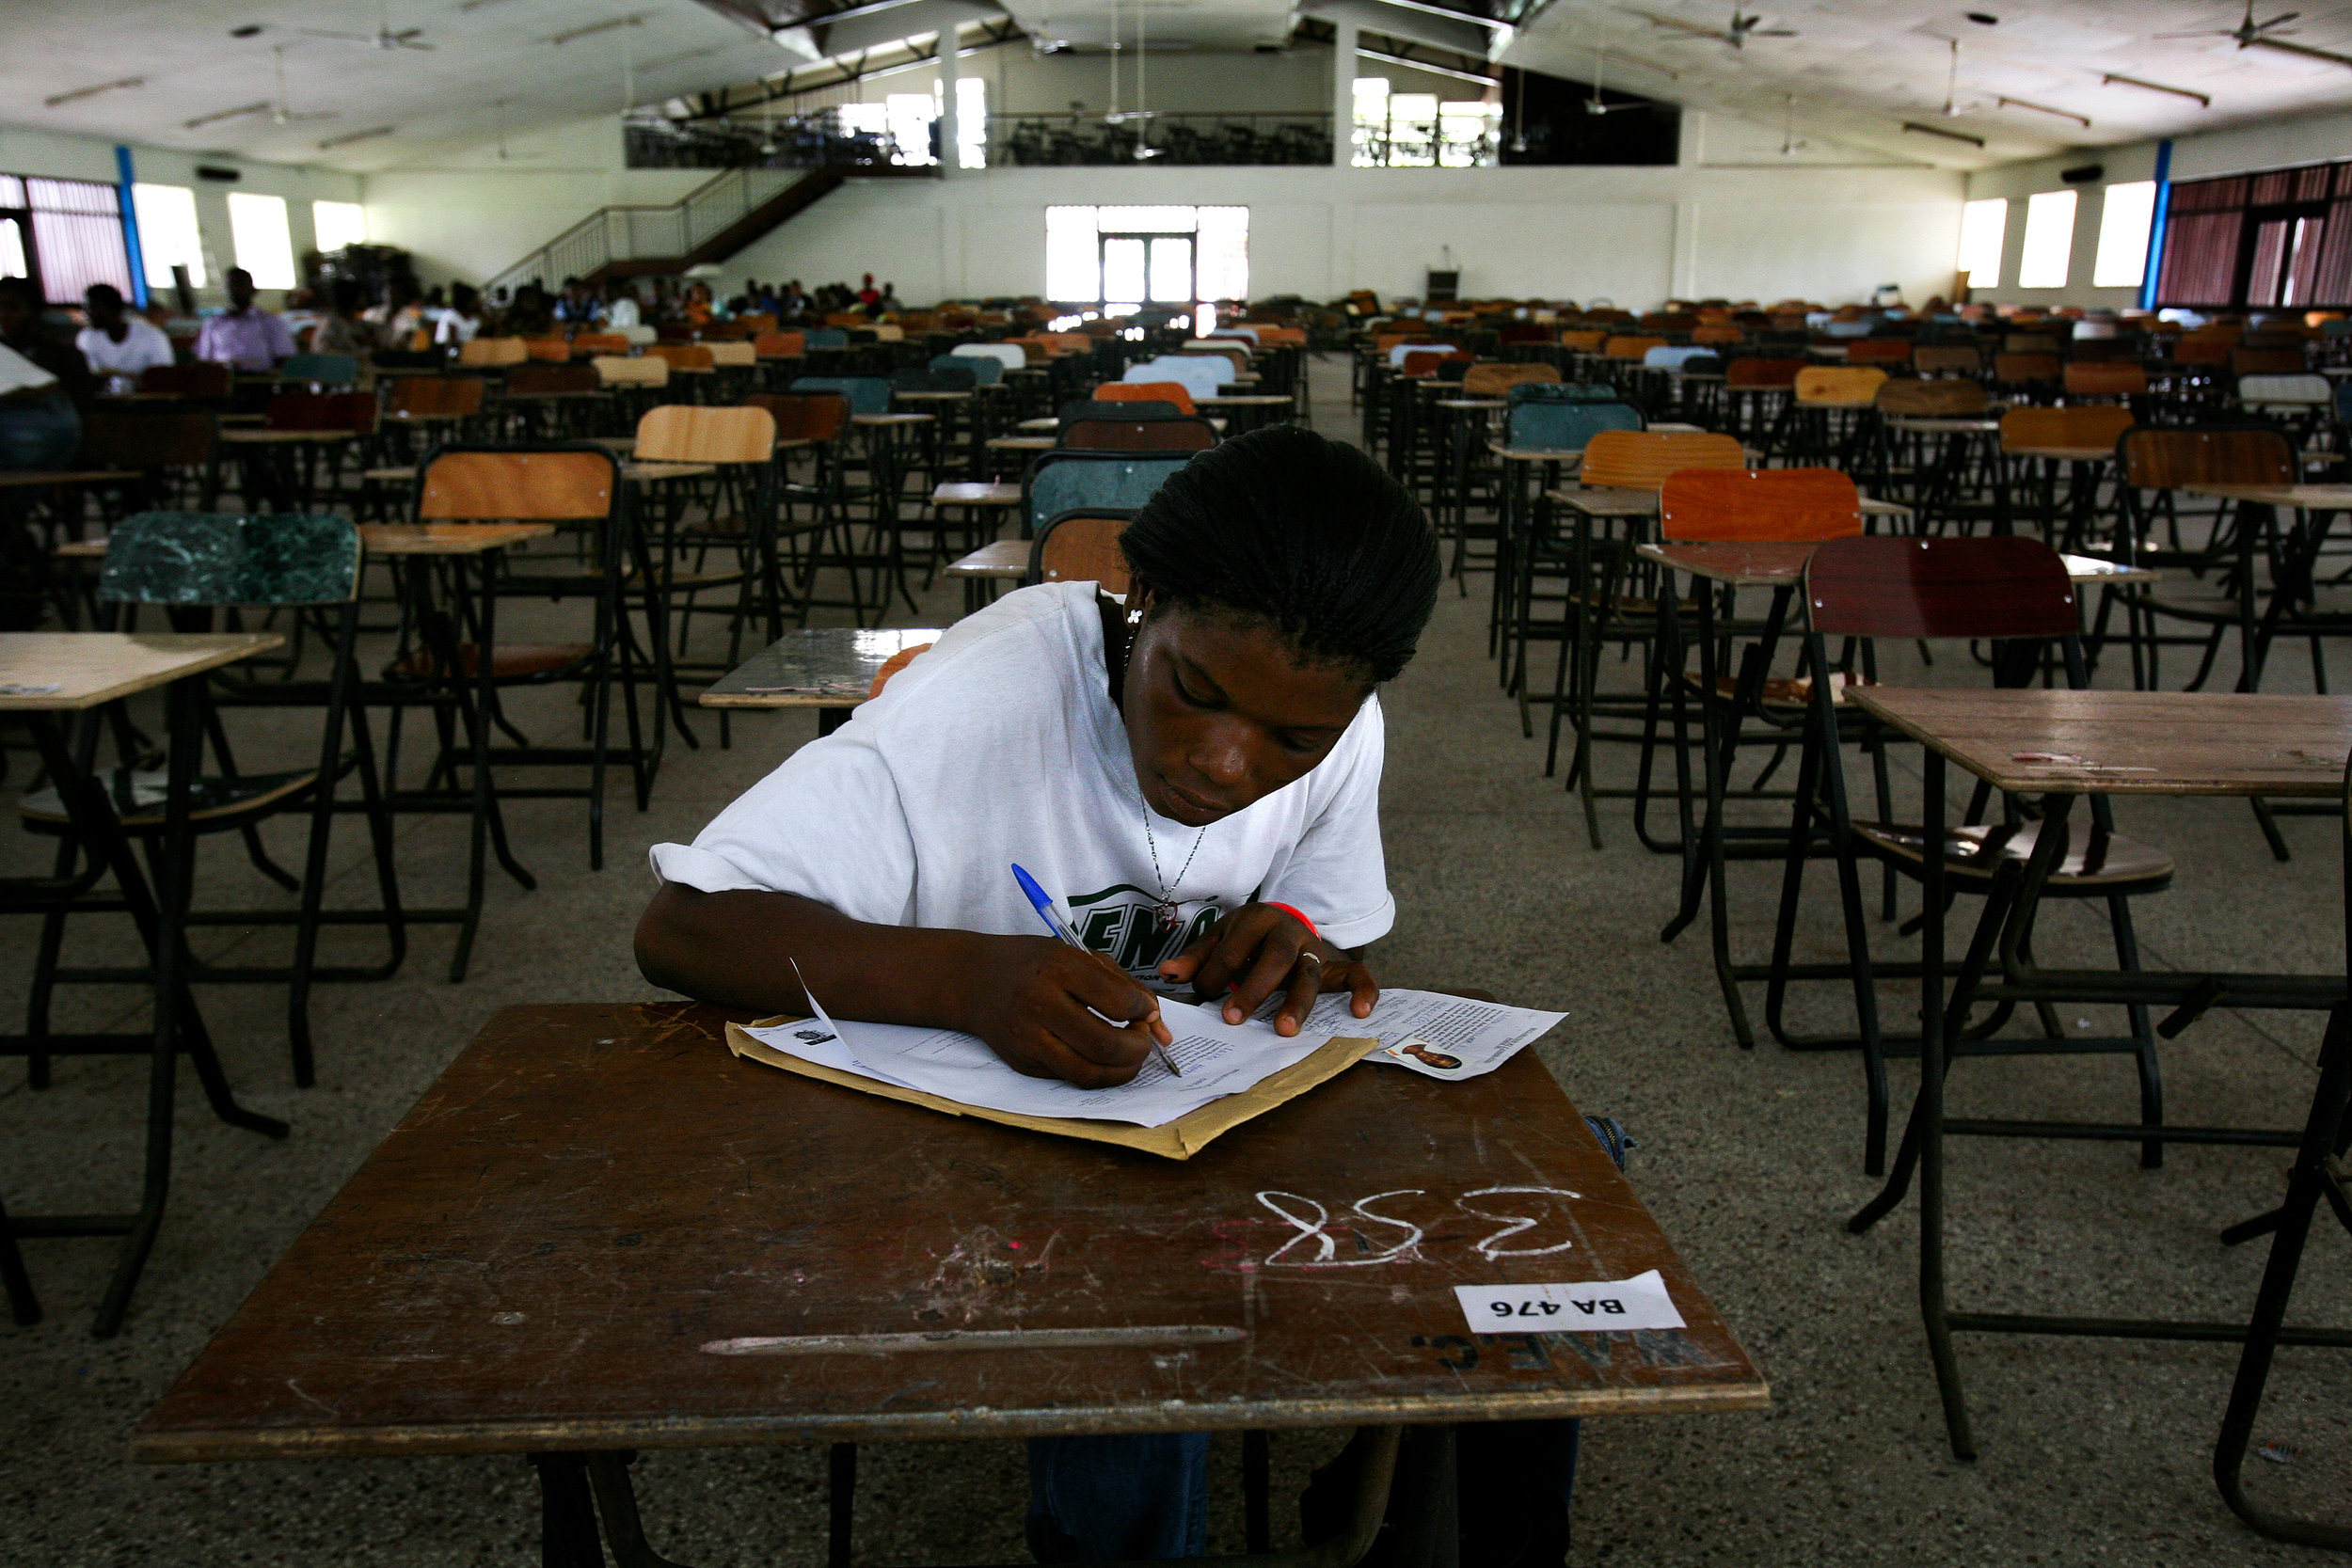 Lamisi  registers for training college entrance exams in Accra, Ghana on March 17, 2009.